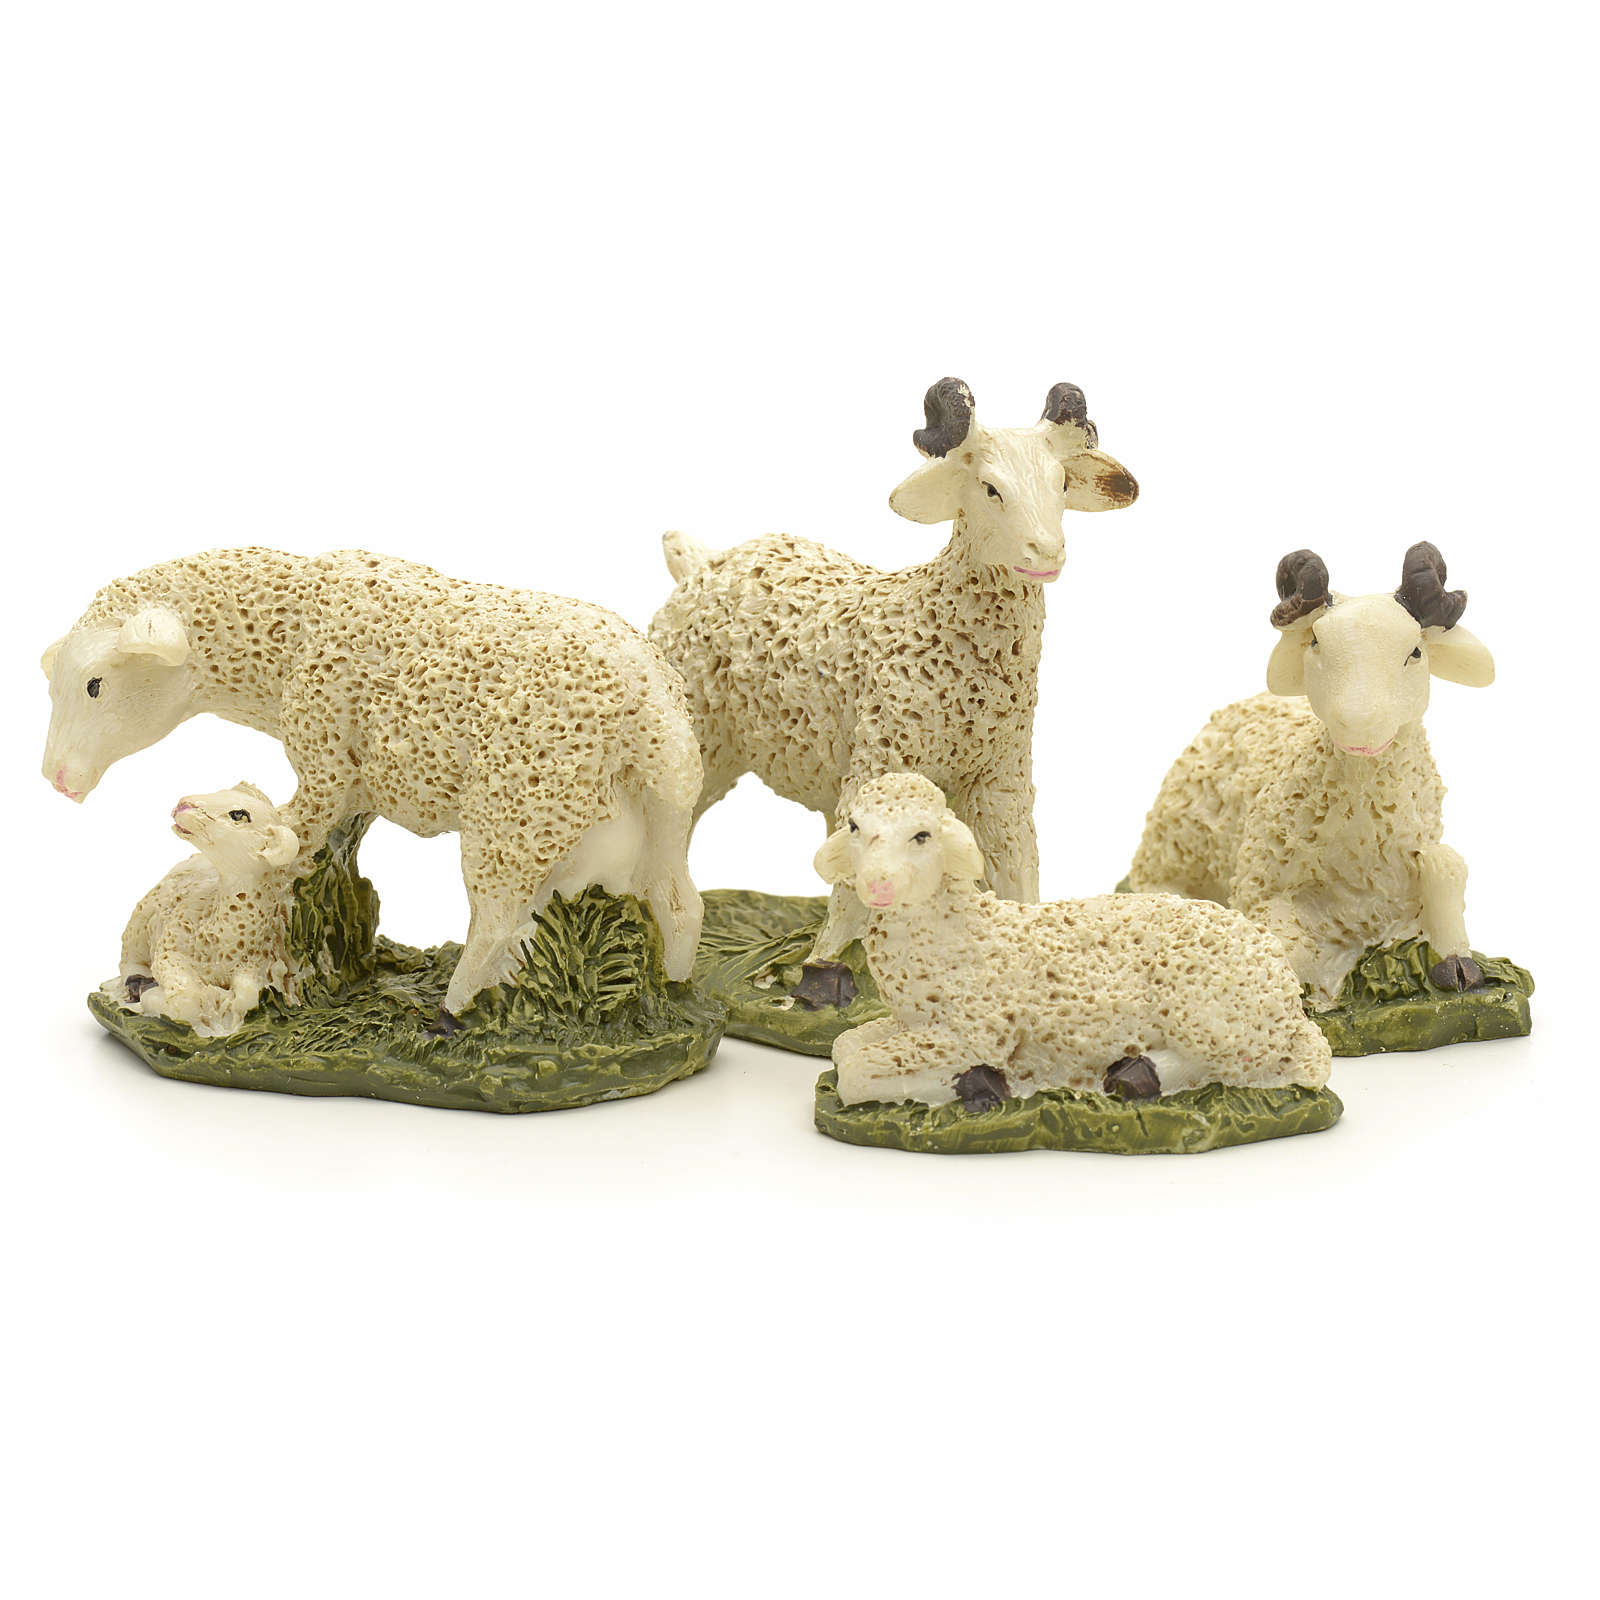 Nativity figurine in resin, sheep 10cm set of 4pcs 3